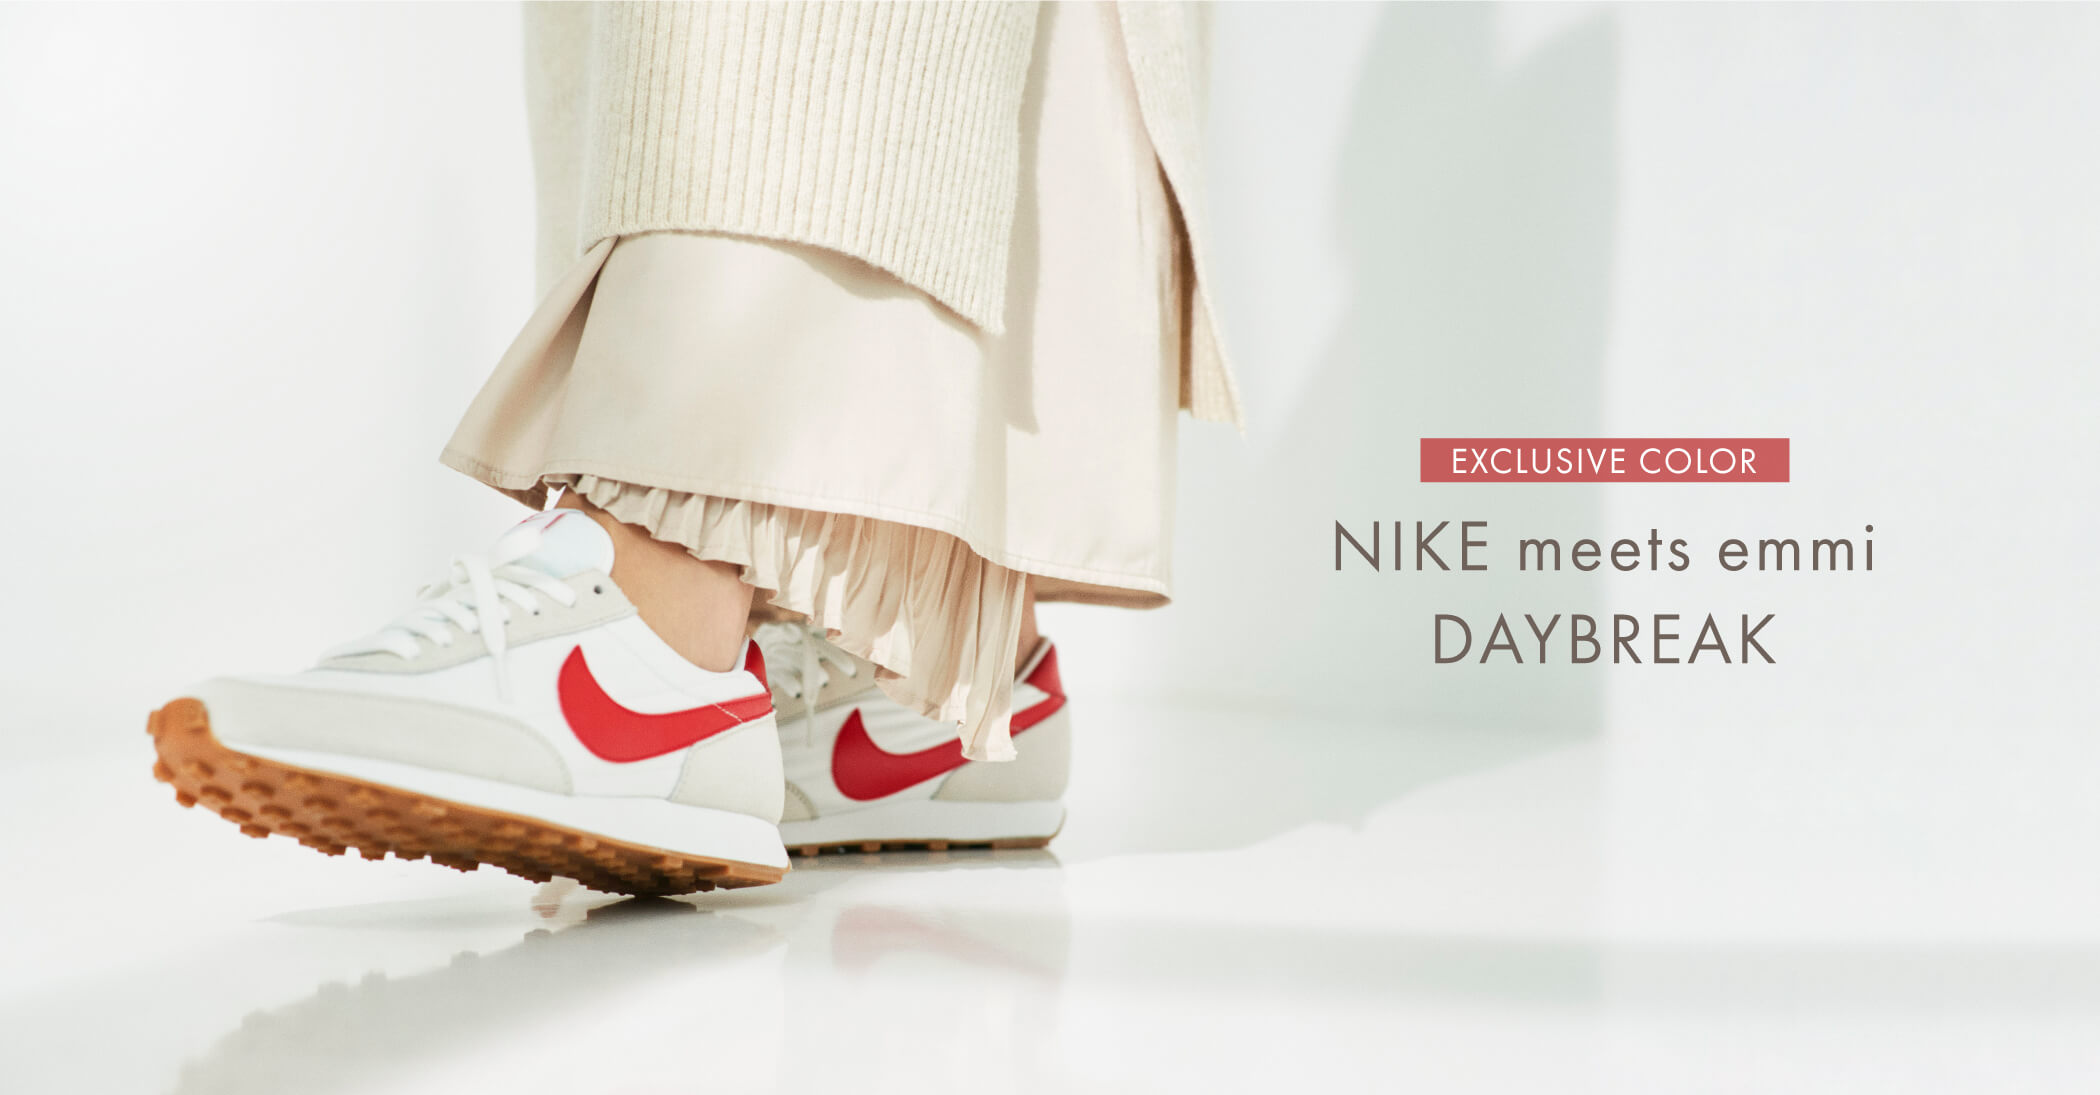 EXCLUSIVE COLOR NIKE meets emmi DAYBREAK